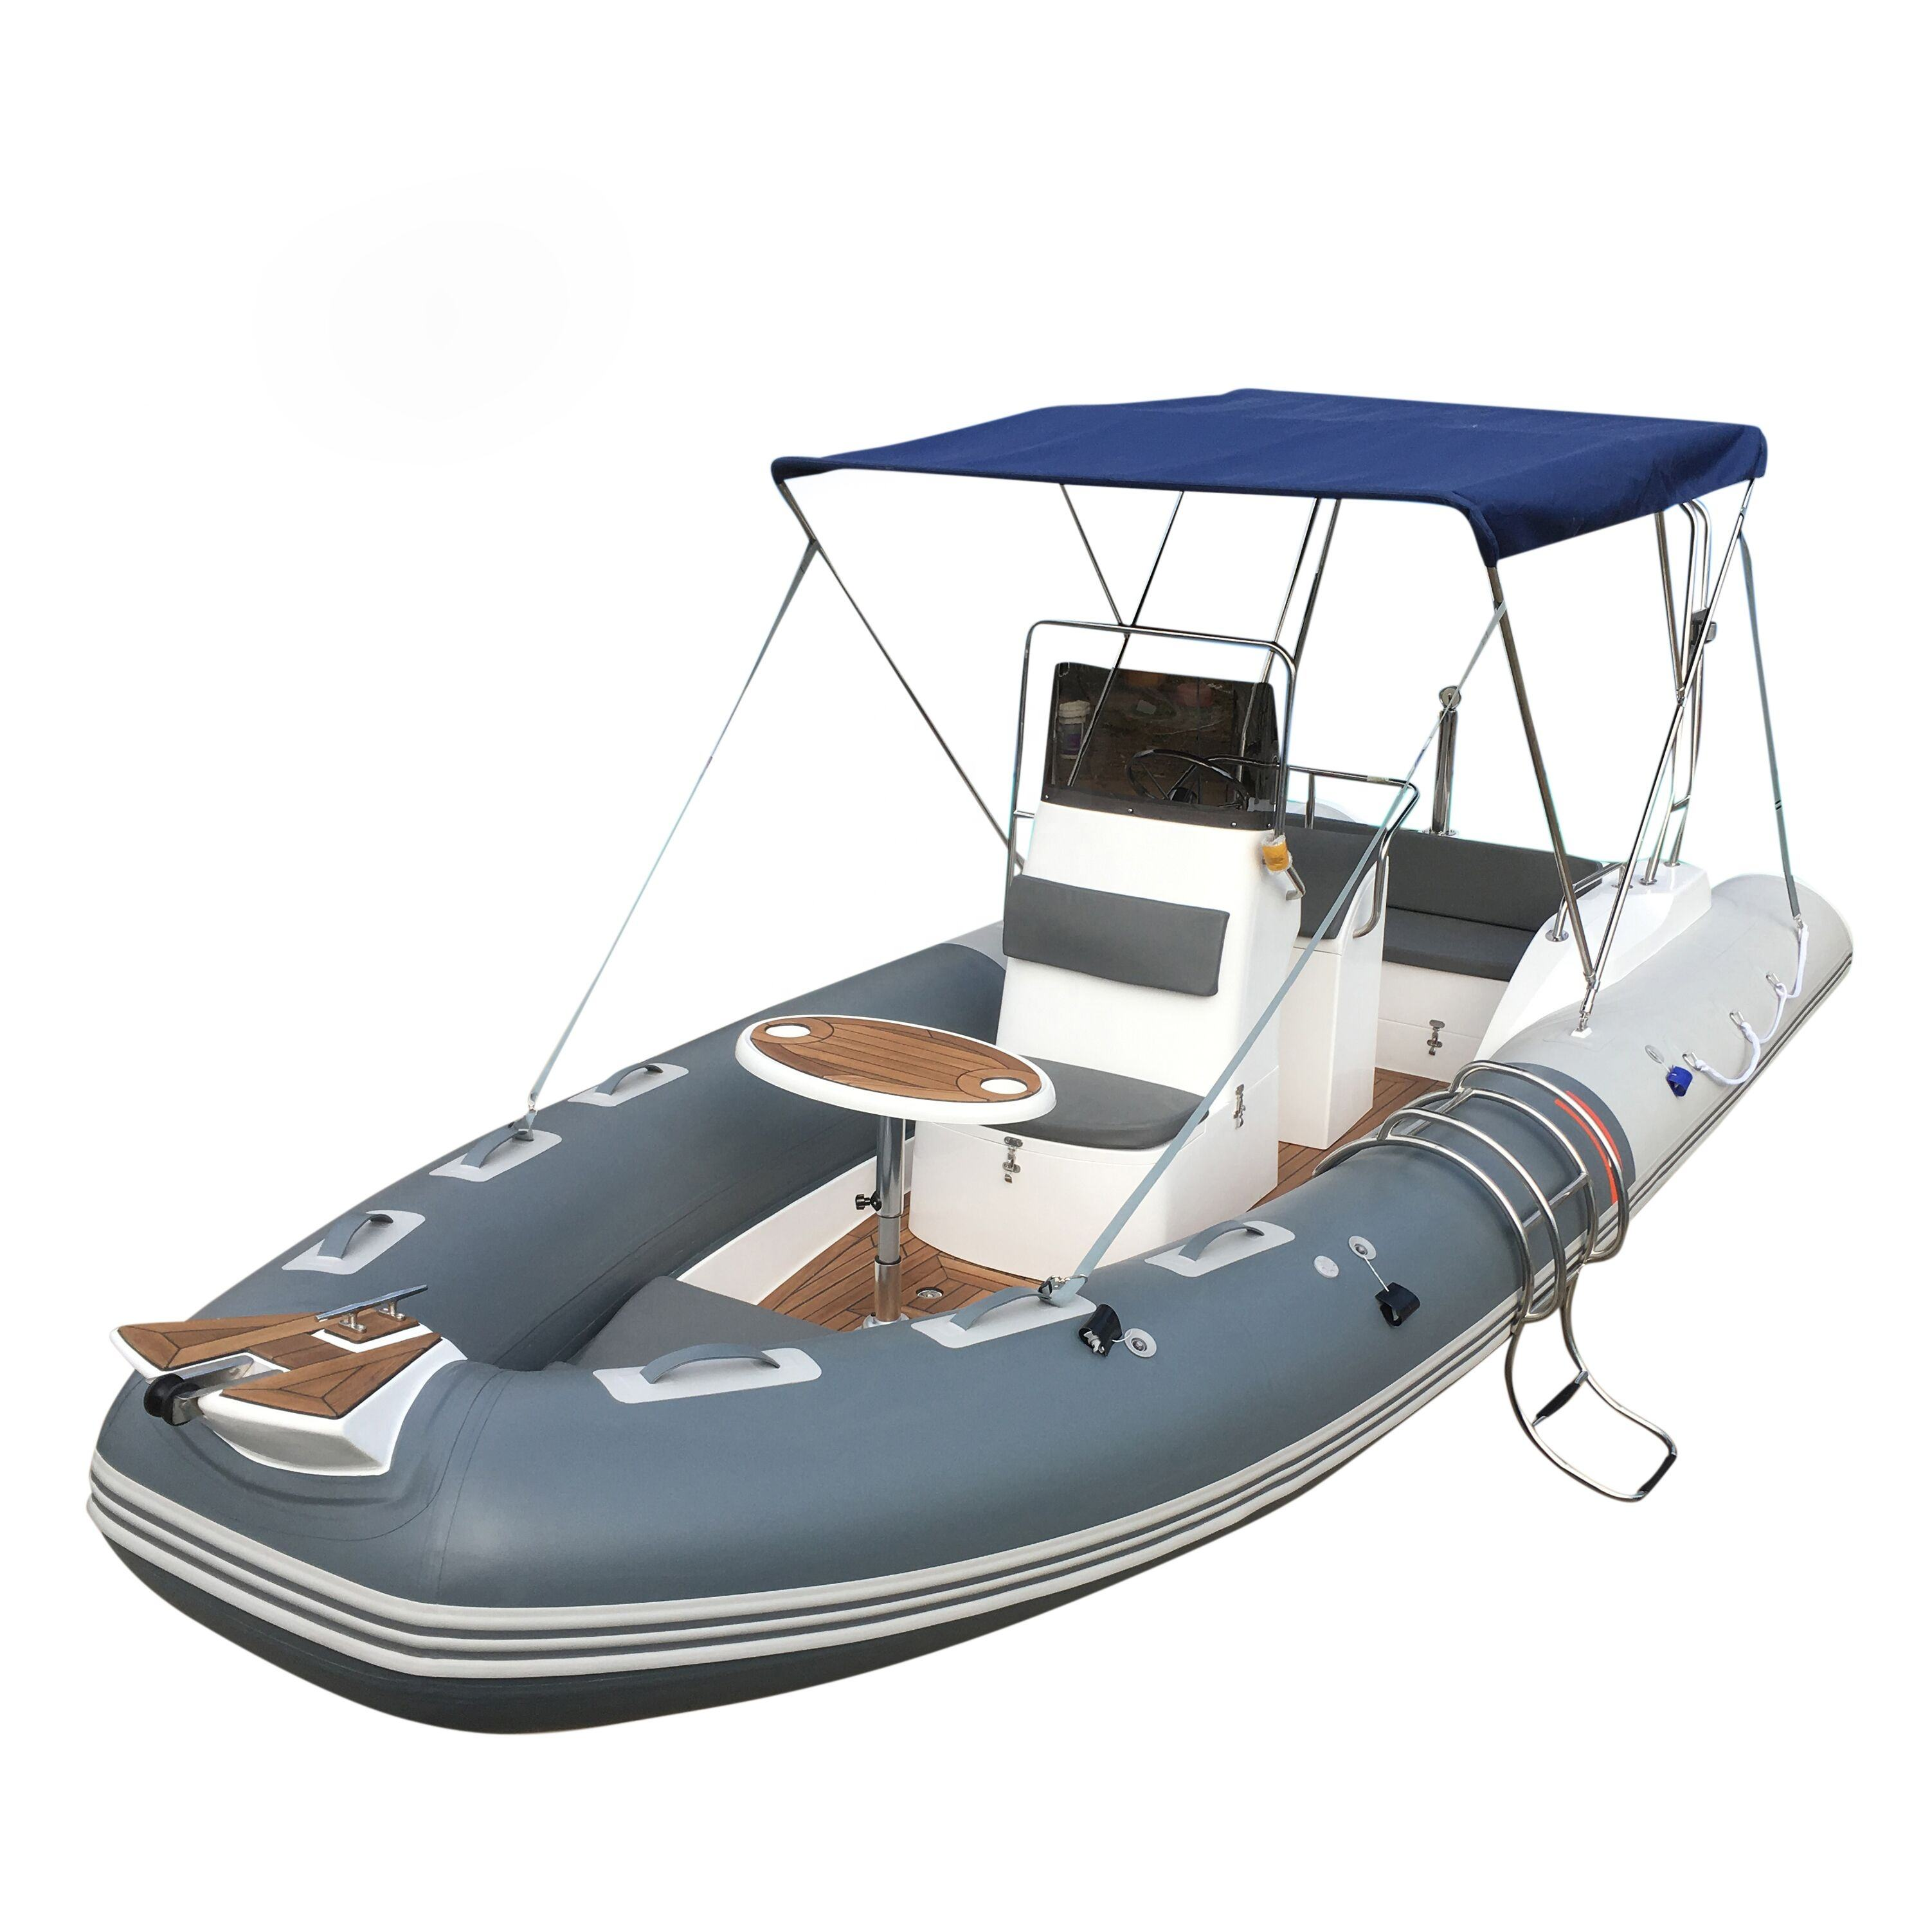 RIB580B Goethe Factory Direct Sale 8 people Center Console Inflatable Fiberglass Boat Dinghy